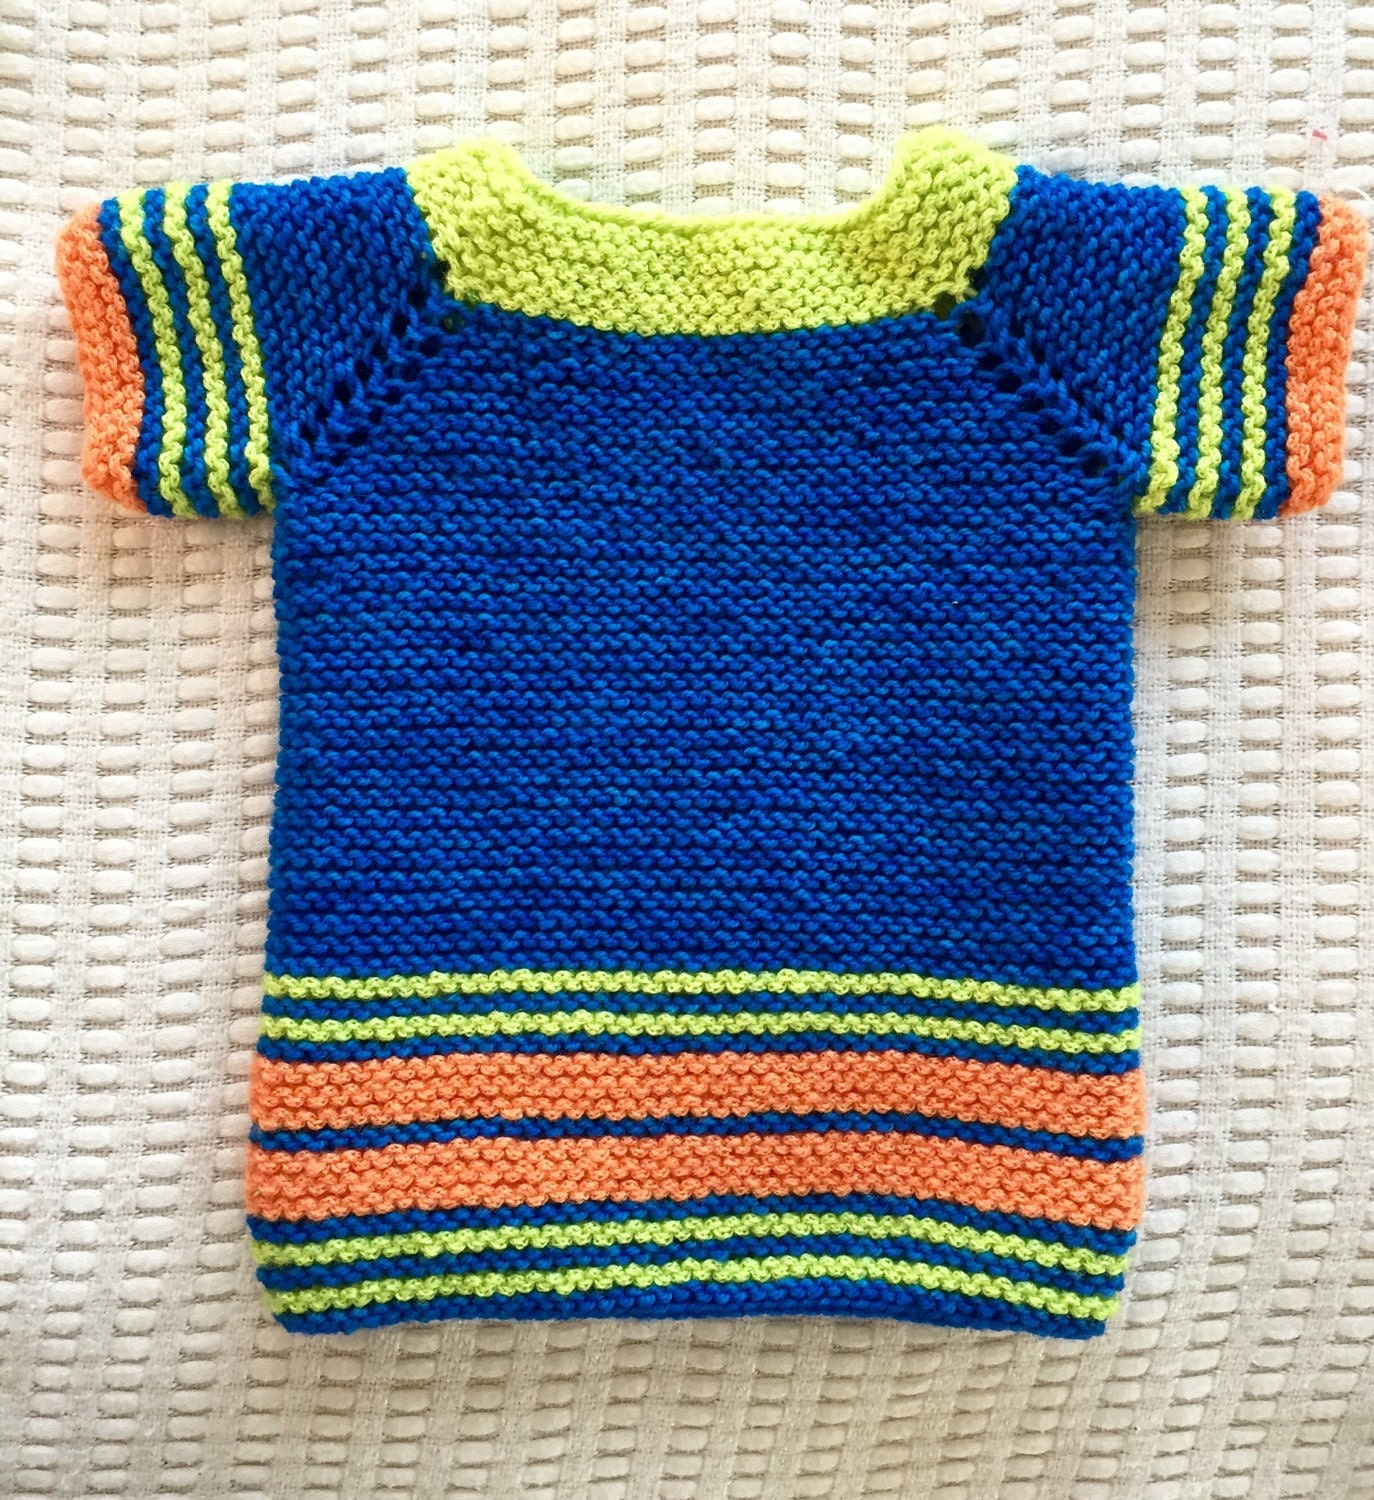 Knitting Baby Sweater Measurements : Knit spring baby sweater size months